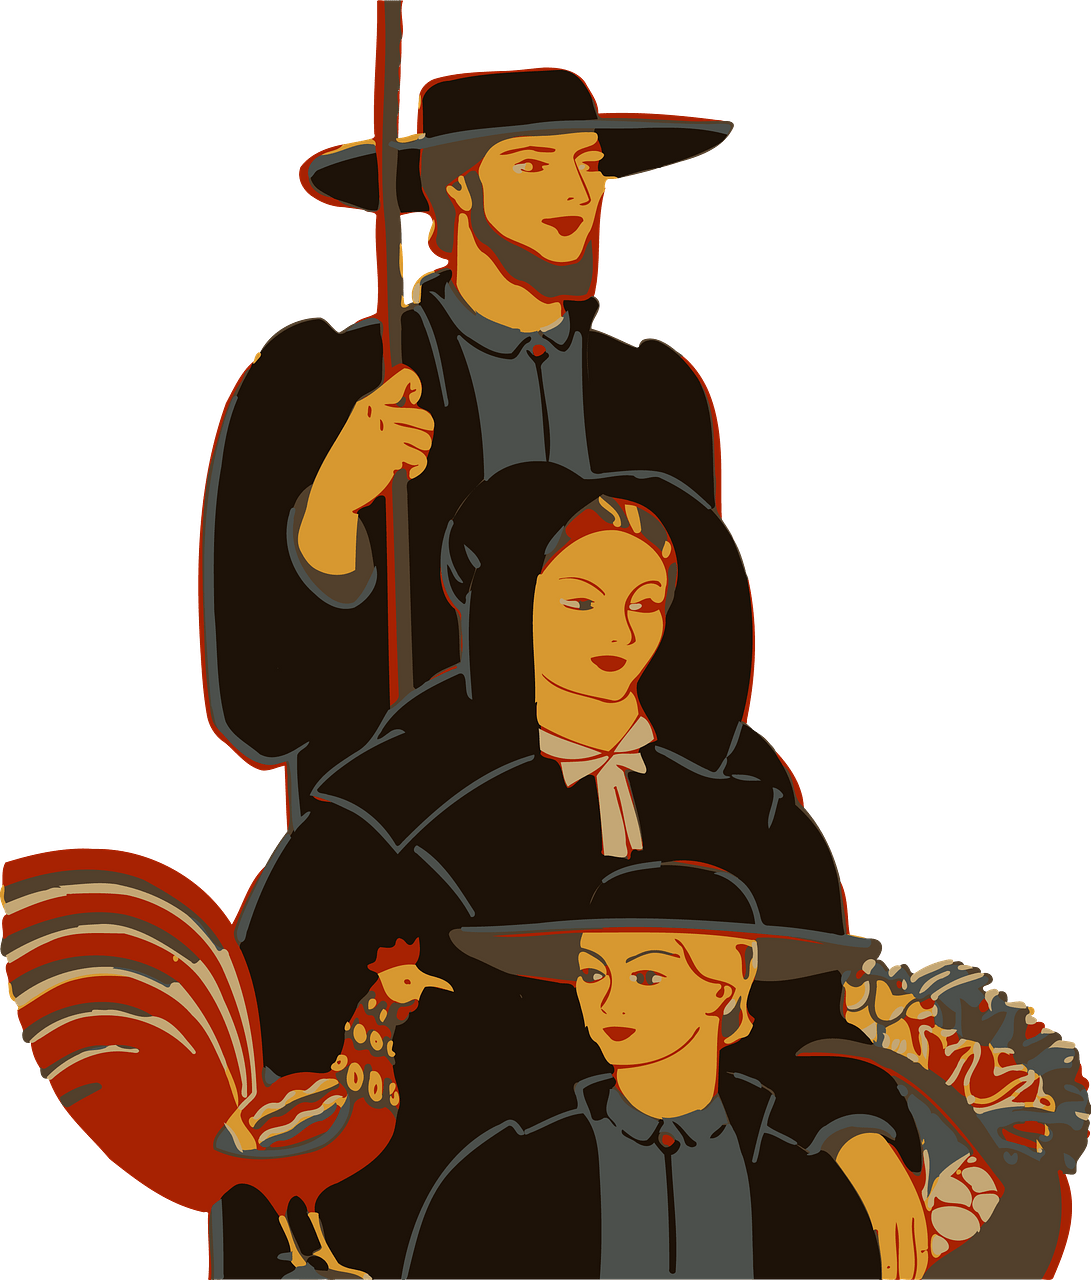 Amish family clipart. Free download..